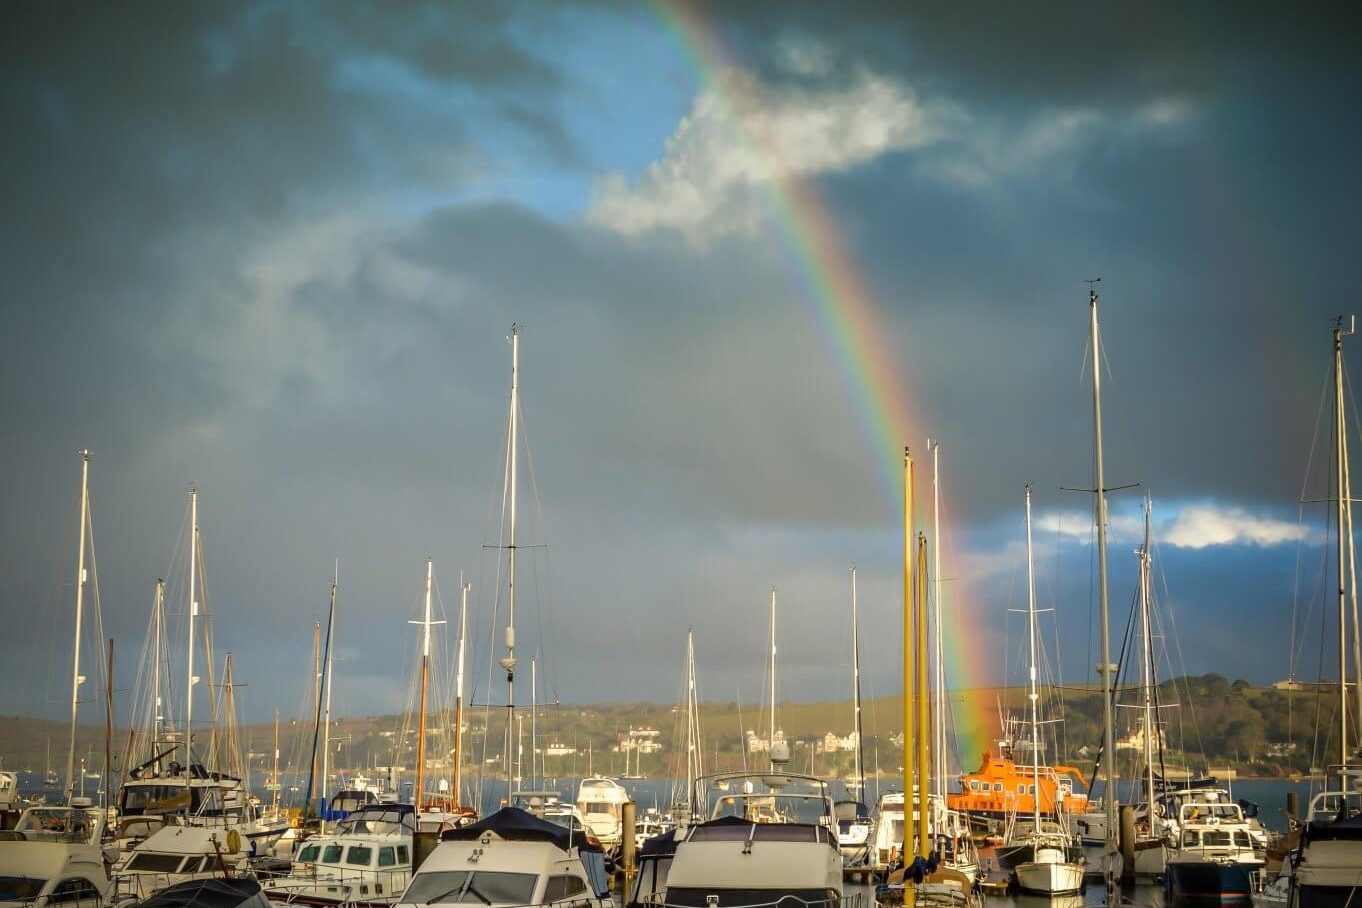 #LoveFalmouth, love falmouth, lovefalmouth, winner, competition, rainbow, falmouth, cornwall